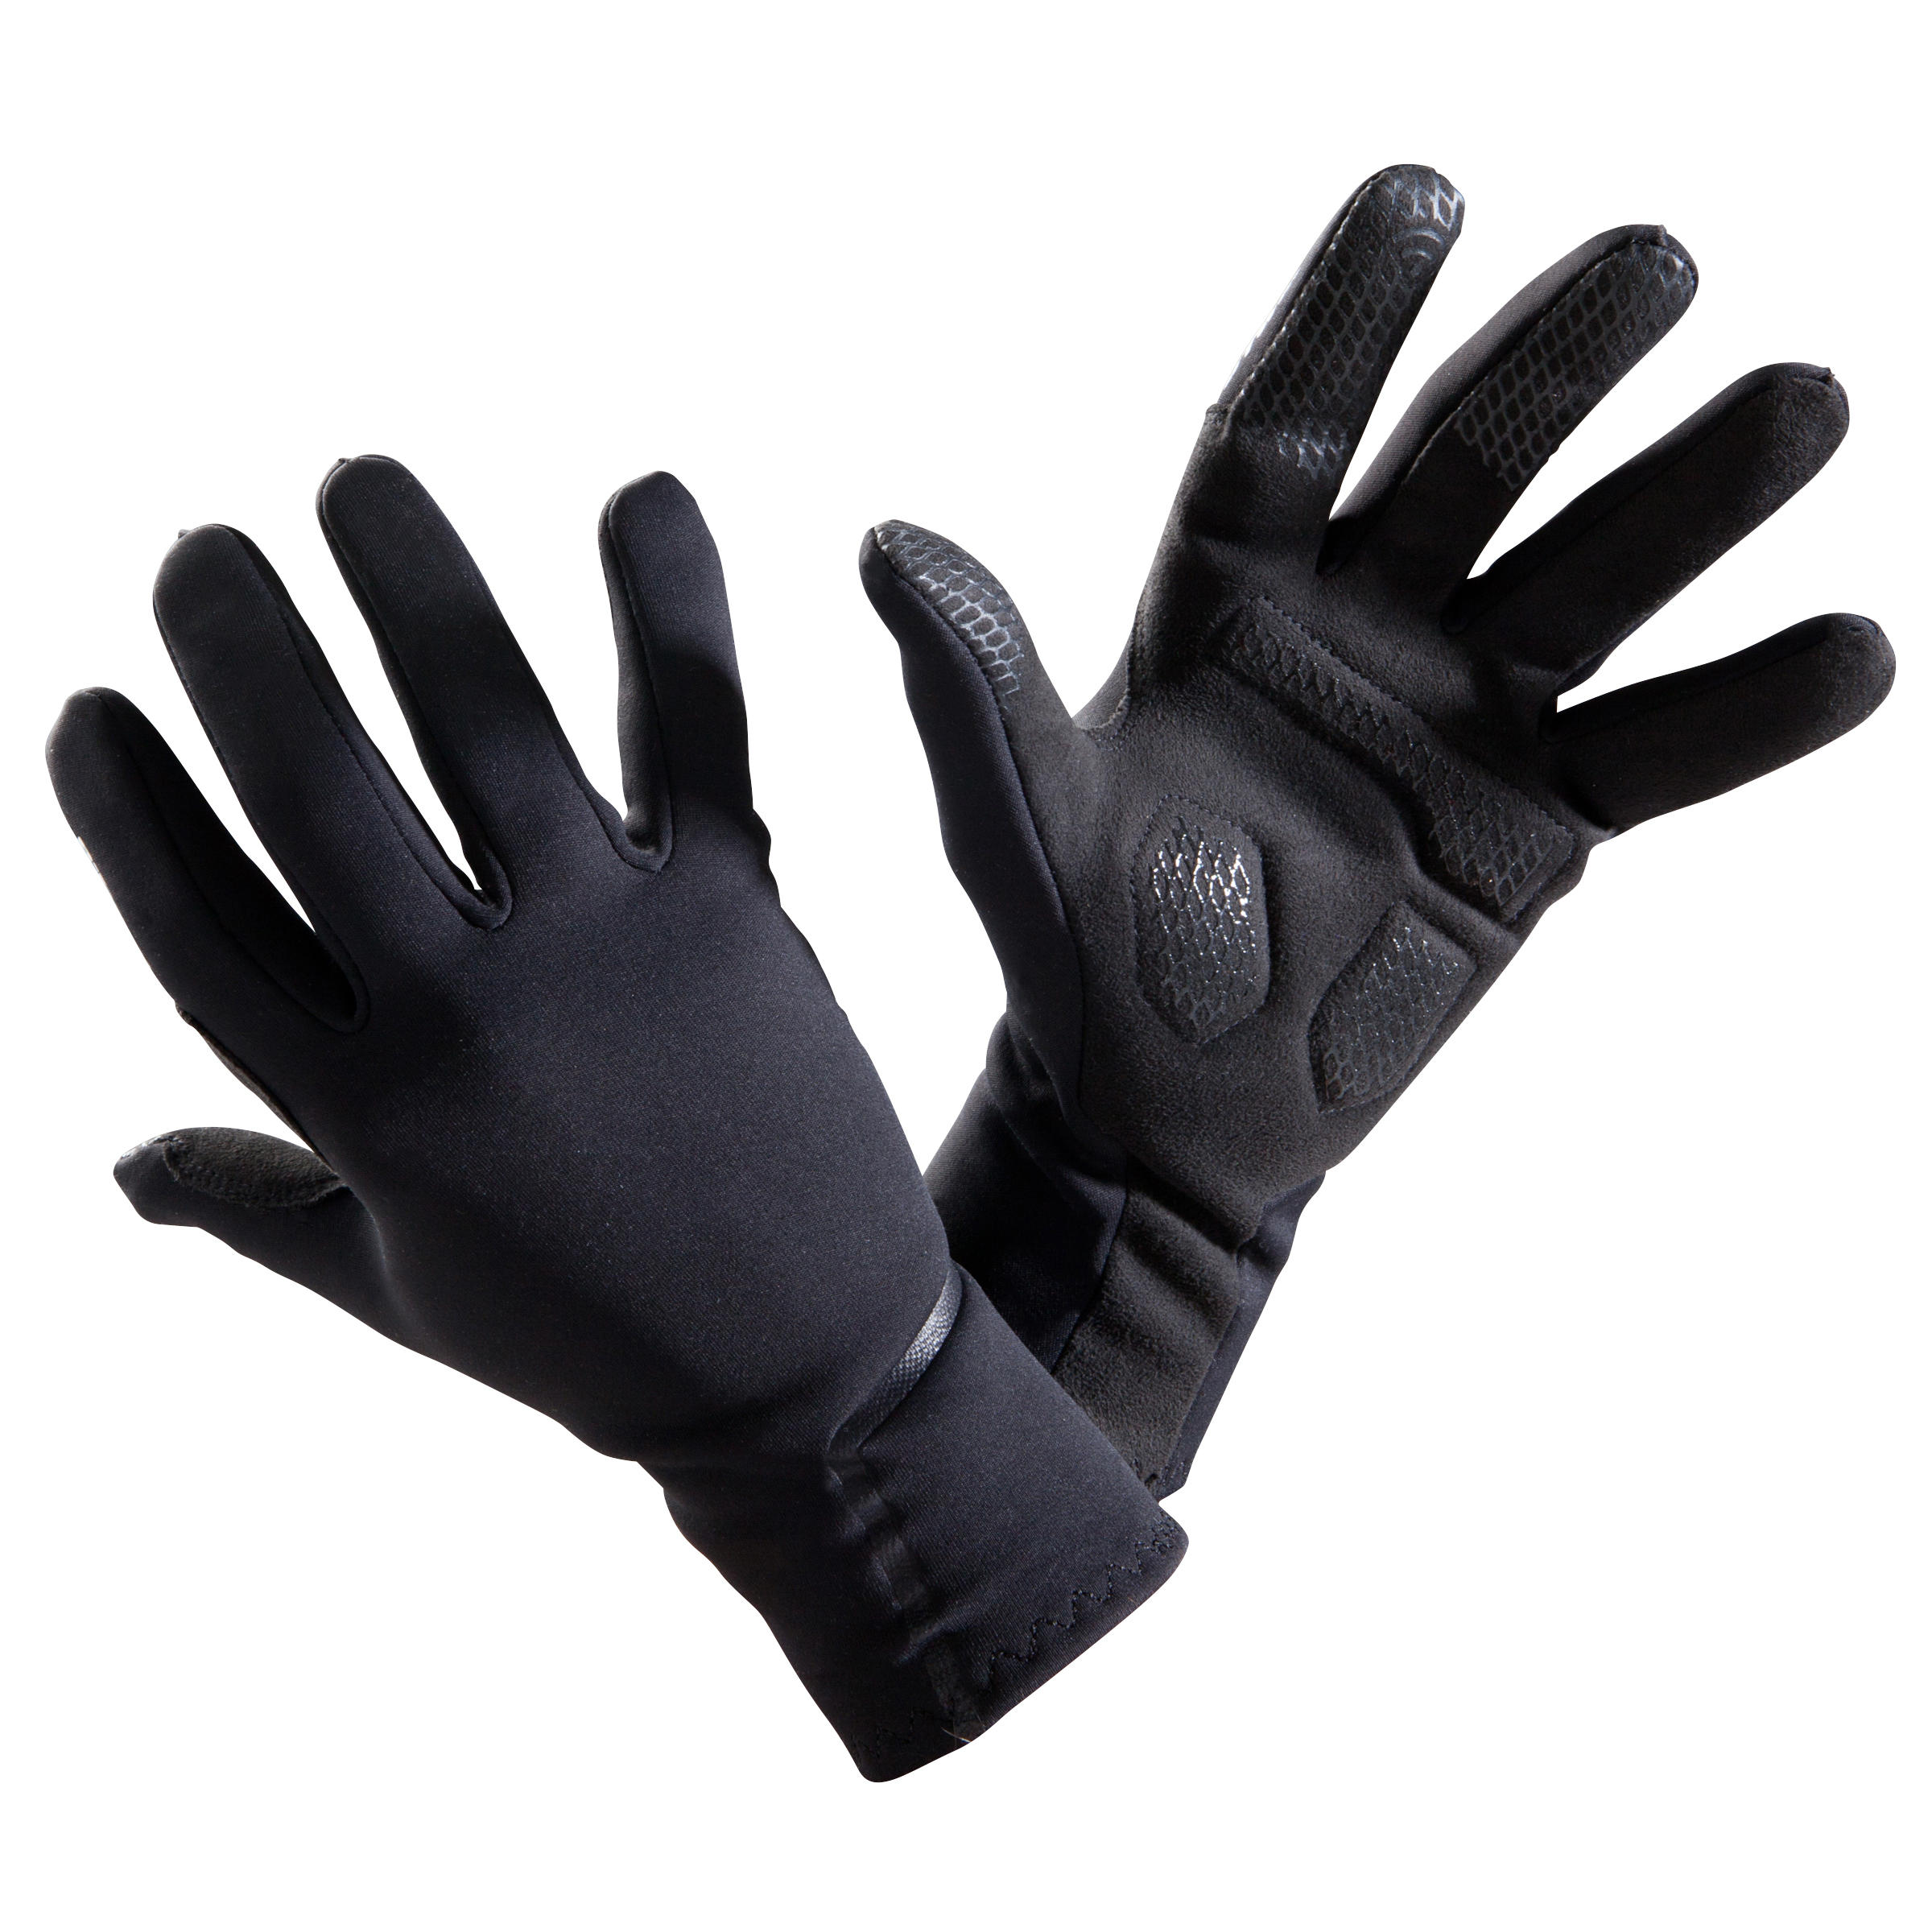 500 Spring/Autumn Cycling Gloves - Black